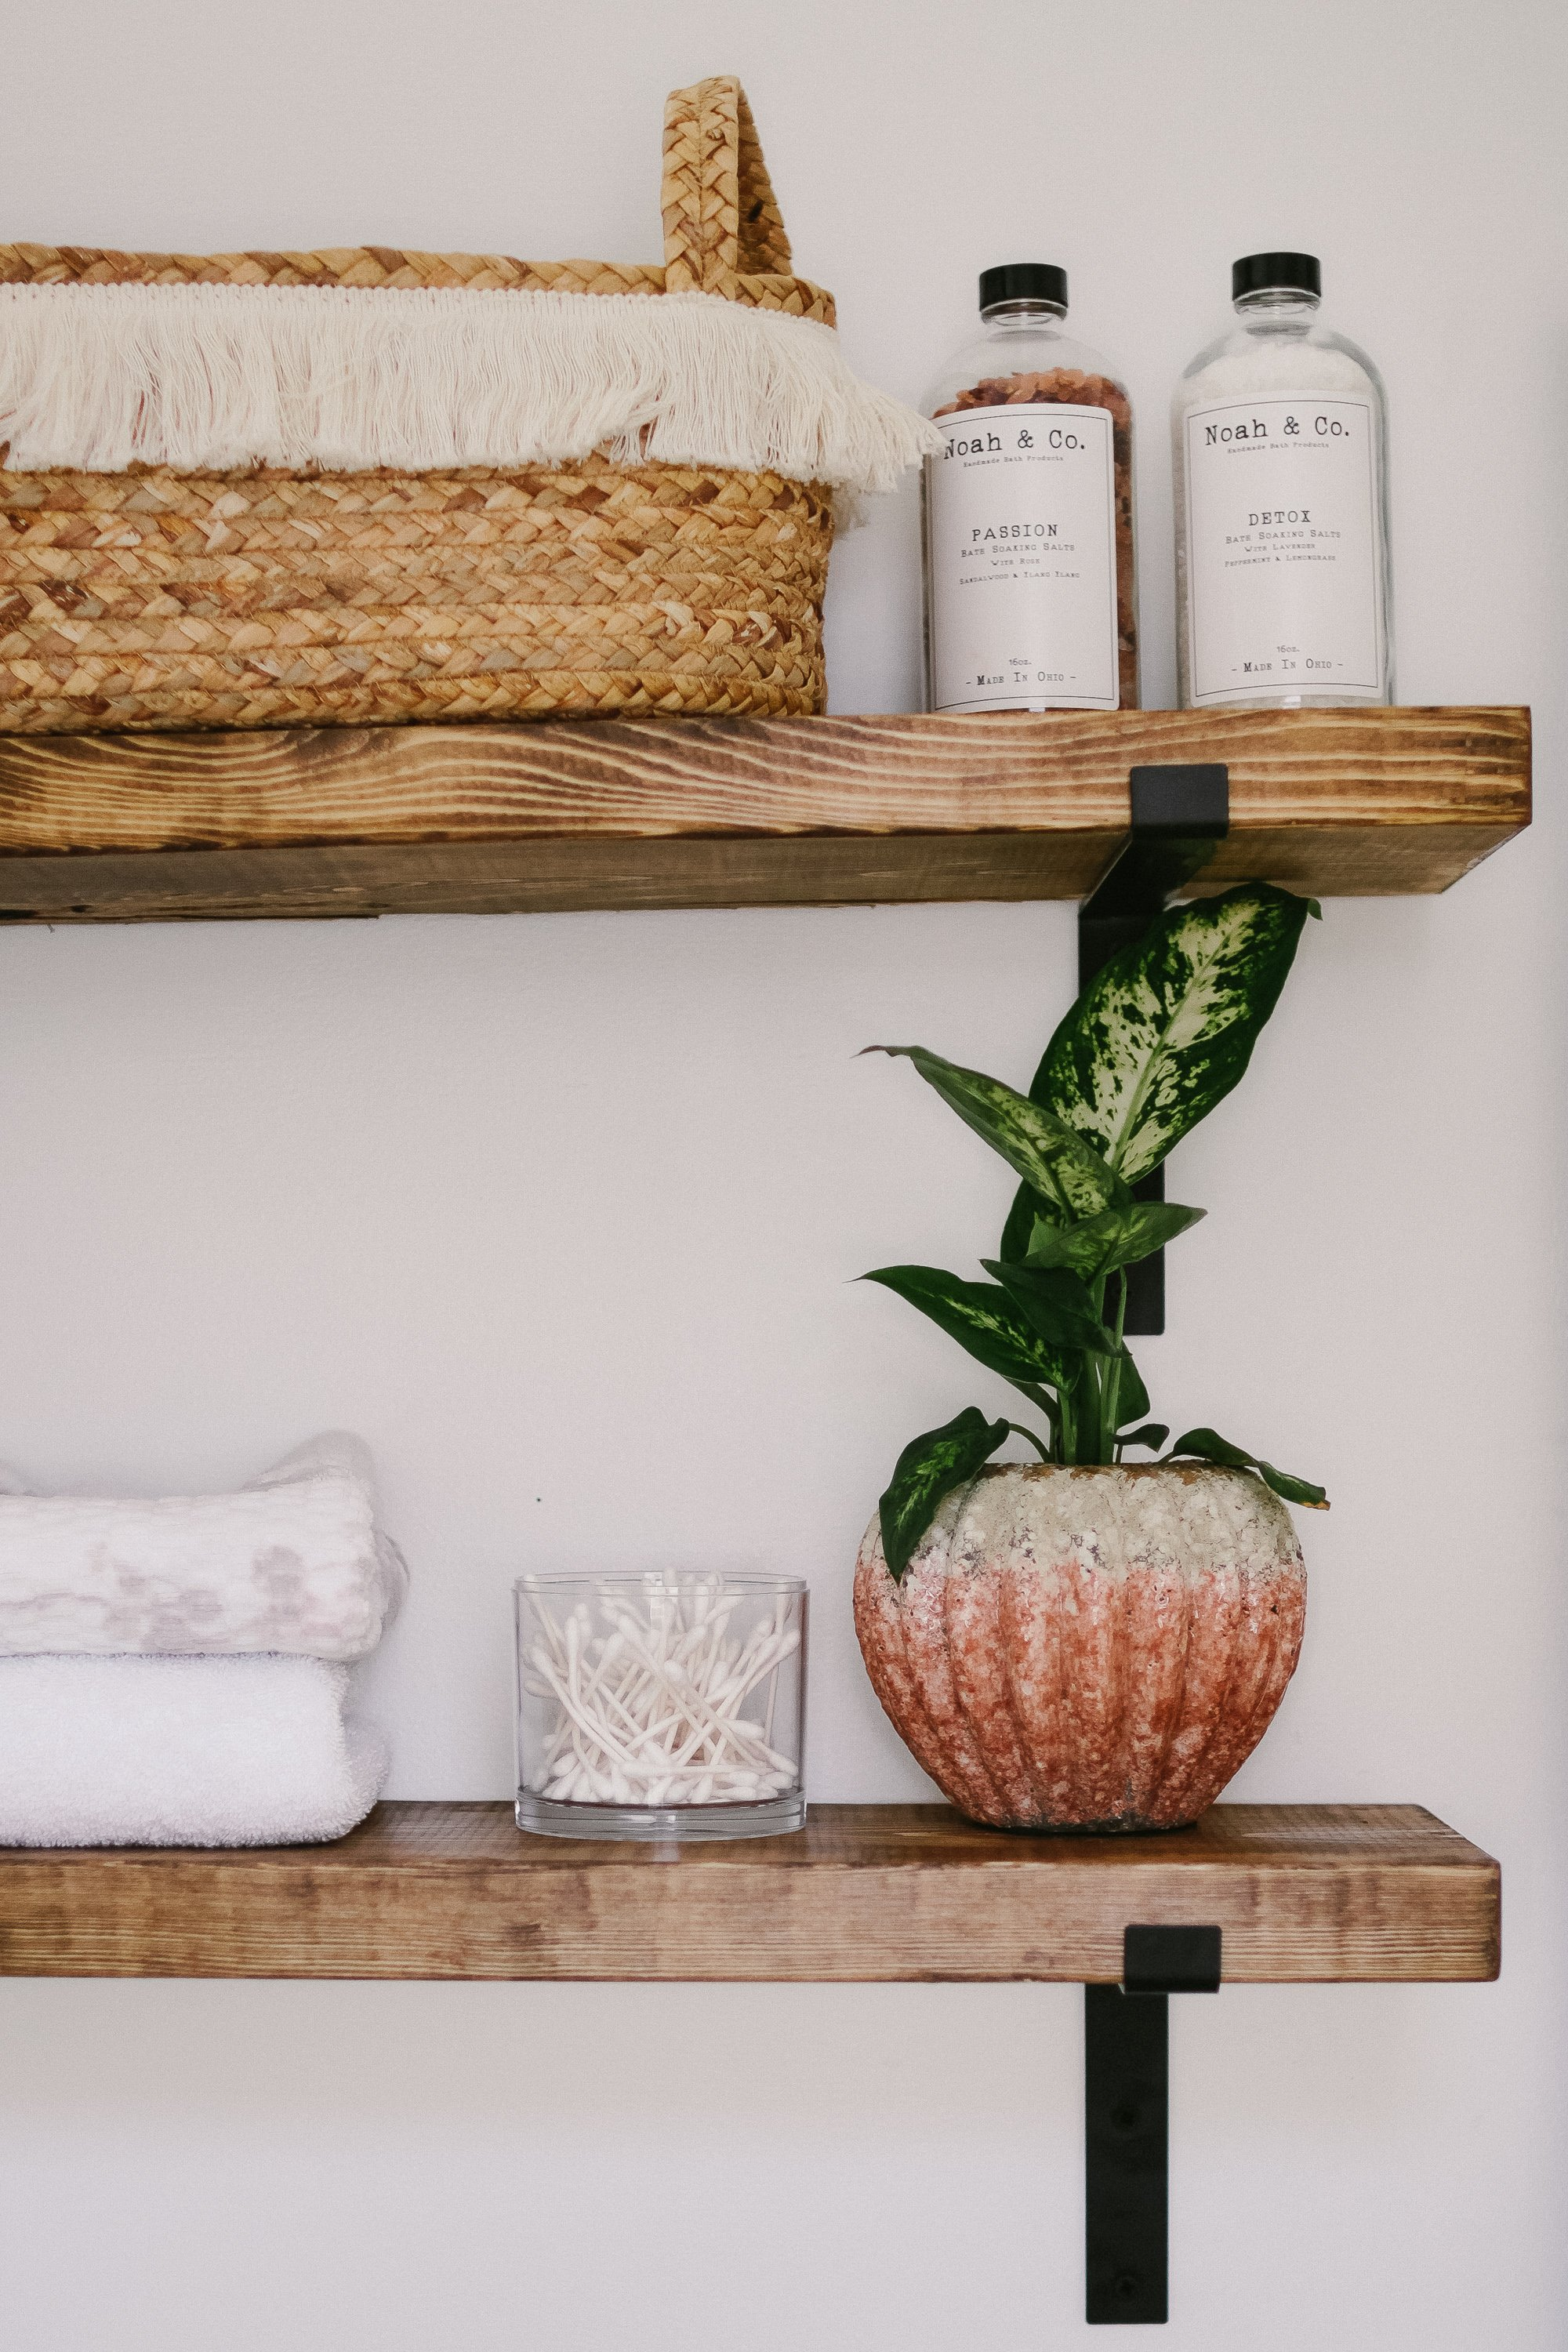 Industrial Shelving In The Bathroom. How to make the easiest DIY Rustic Industrial Shelving in Under 10 minutes and 20 dollars